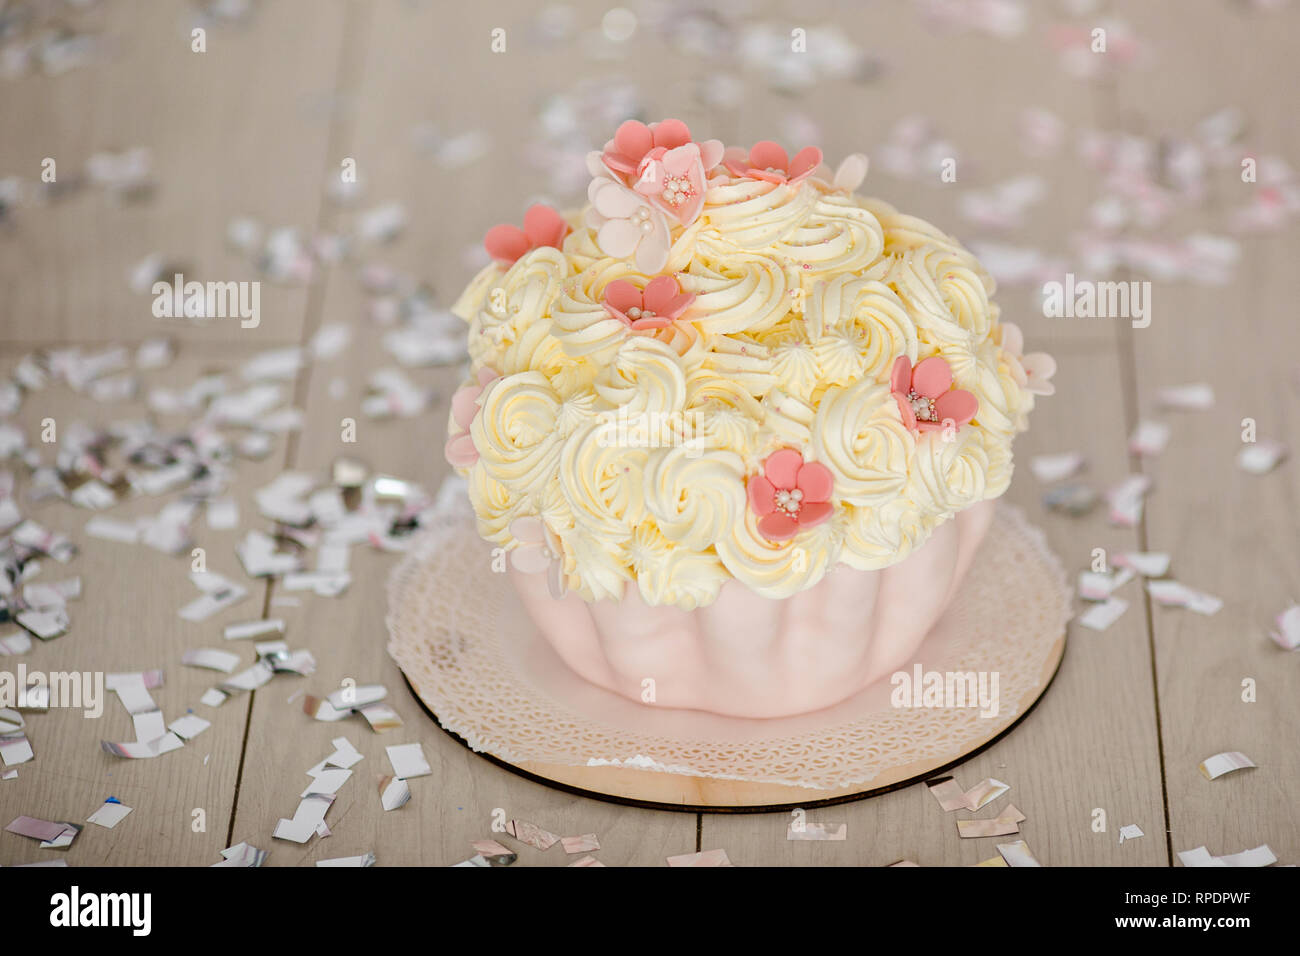 Incredible First Birthday Pink Cake With Flowers For Little Baby Girl And Funny Birthday Cards Online Alyptdamsfinfo